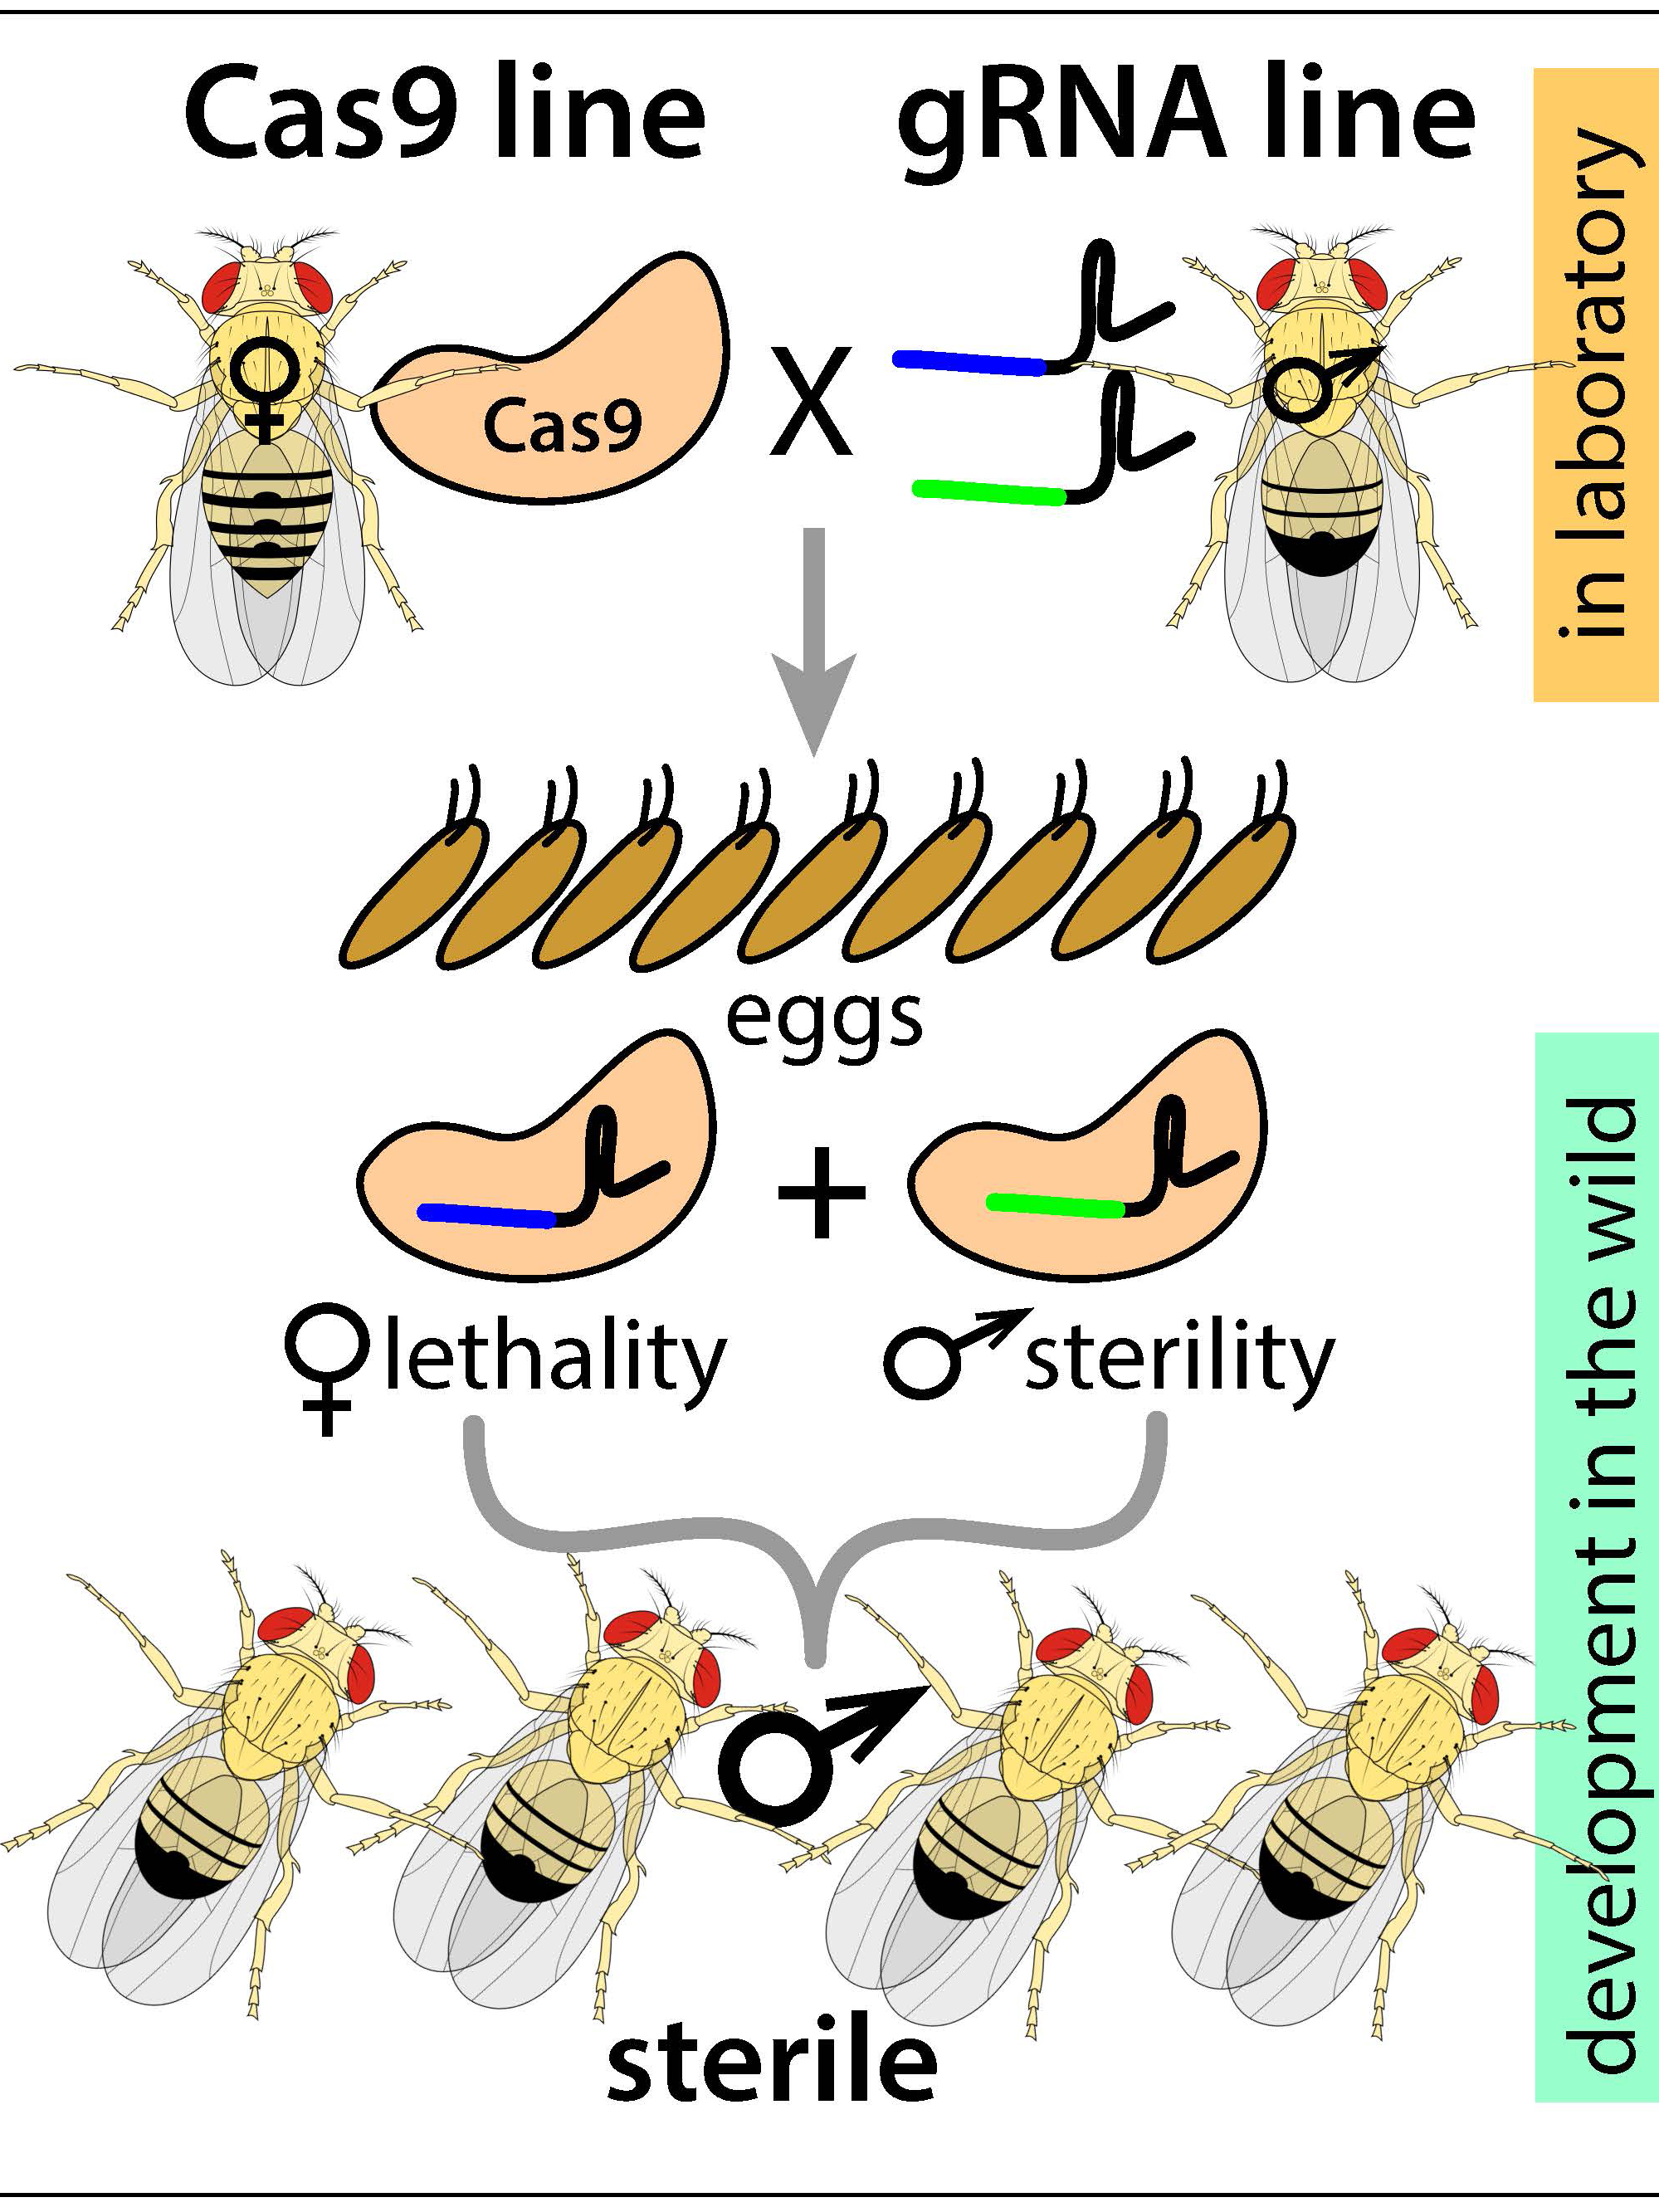 Precision-guided sterile insect technique schematic